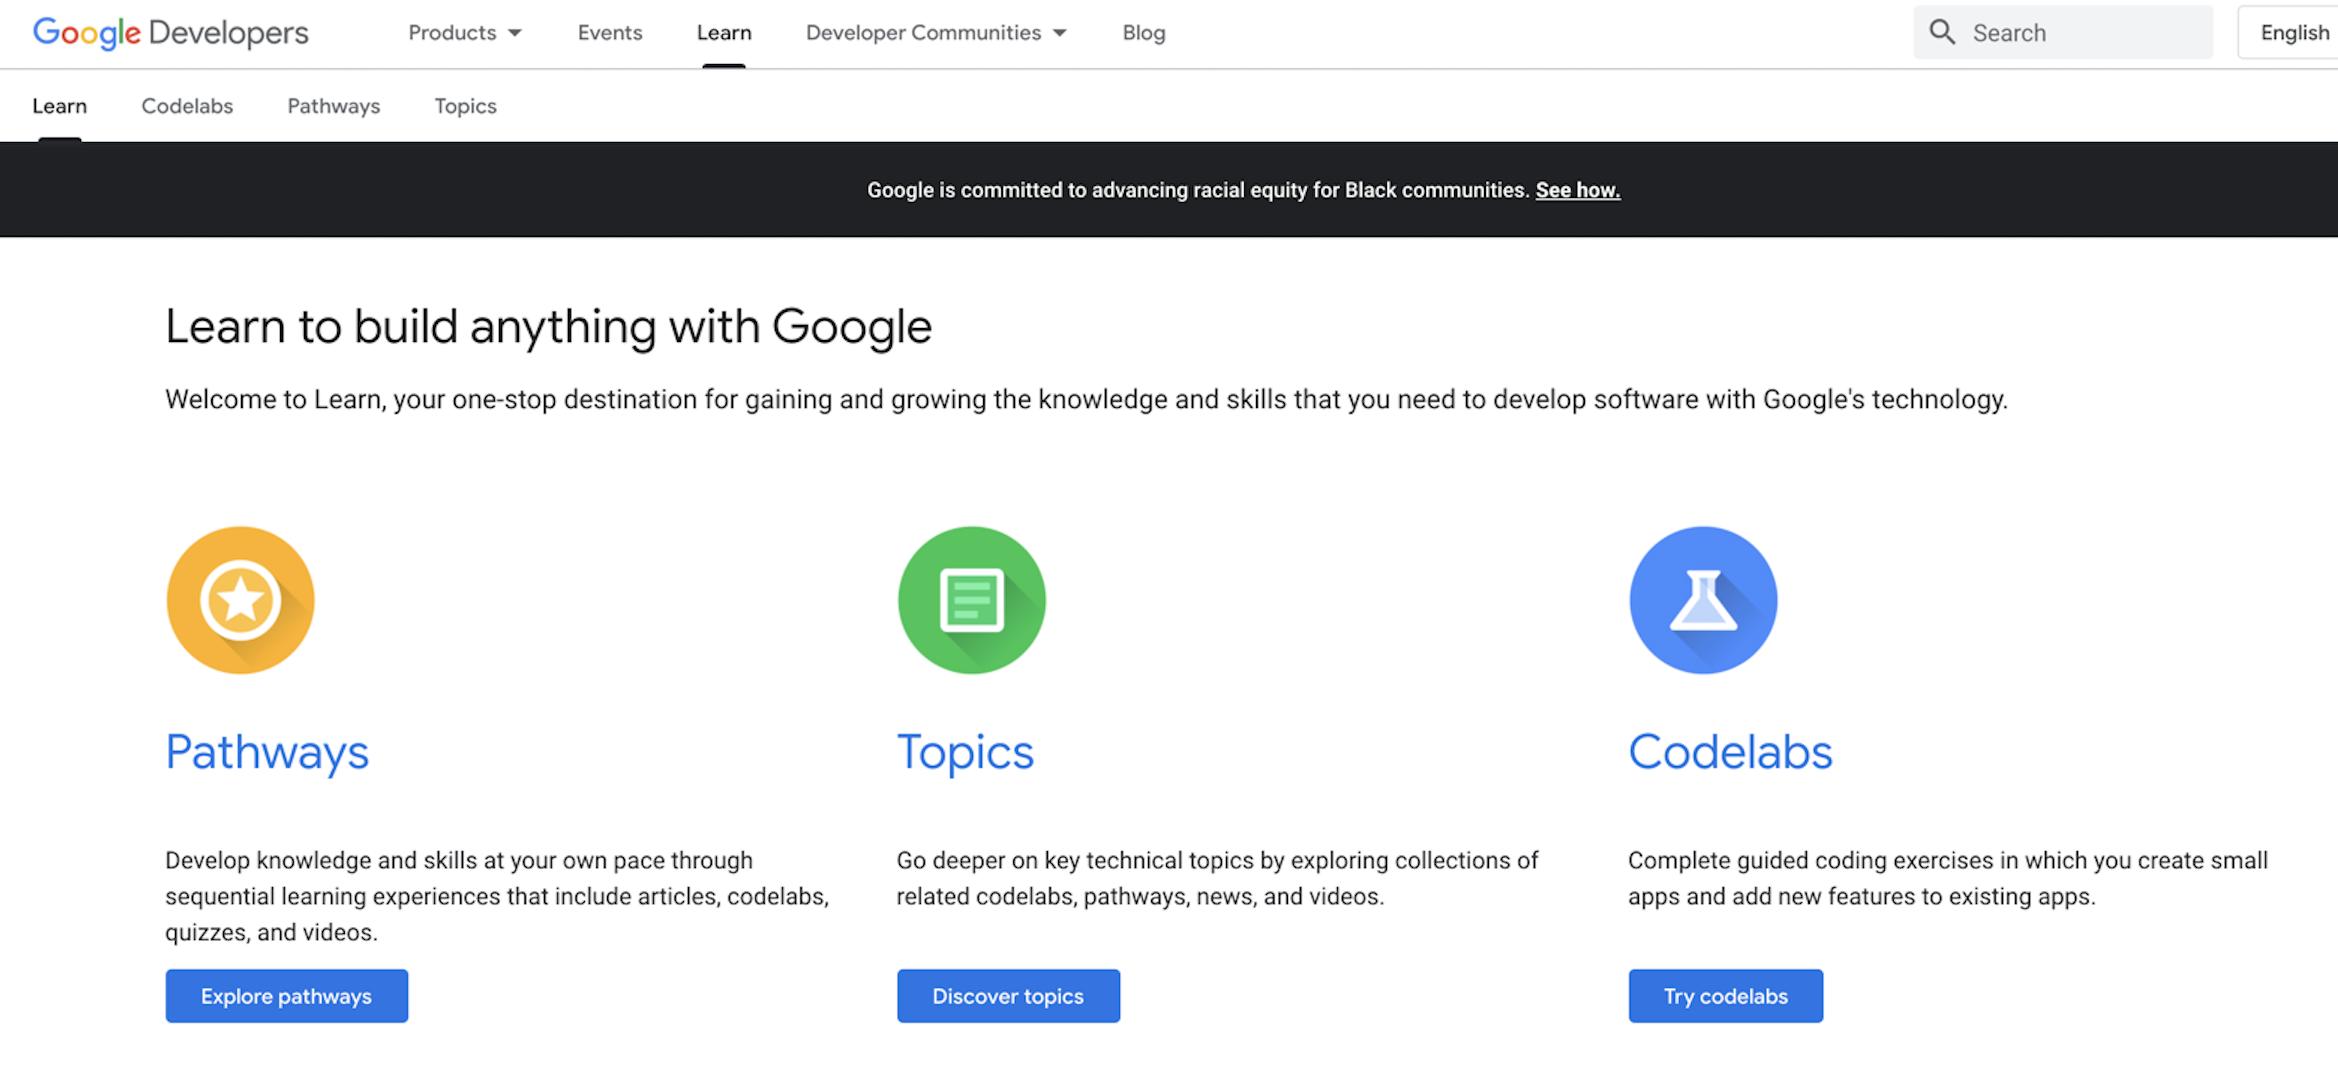 Google Developers learning page image